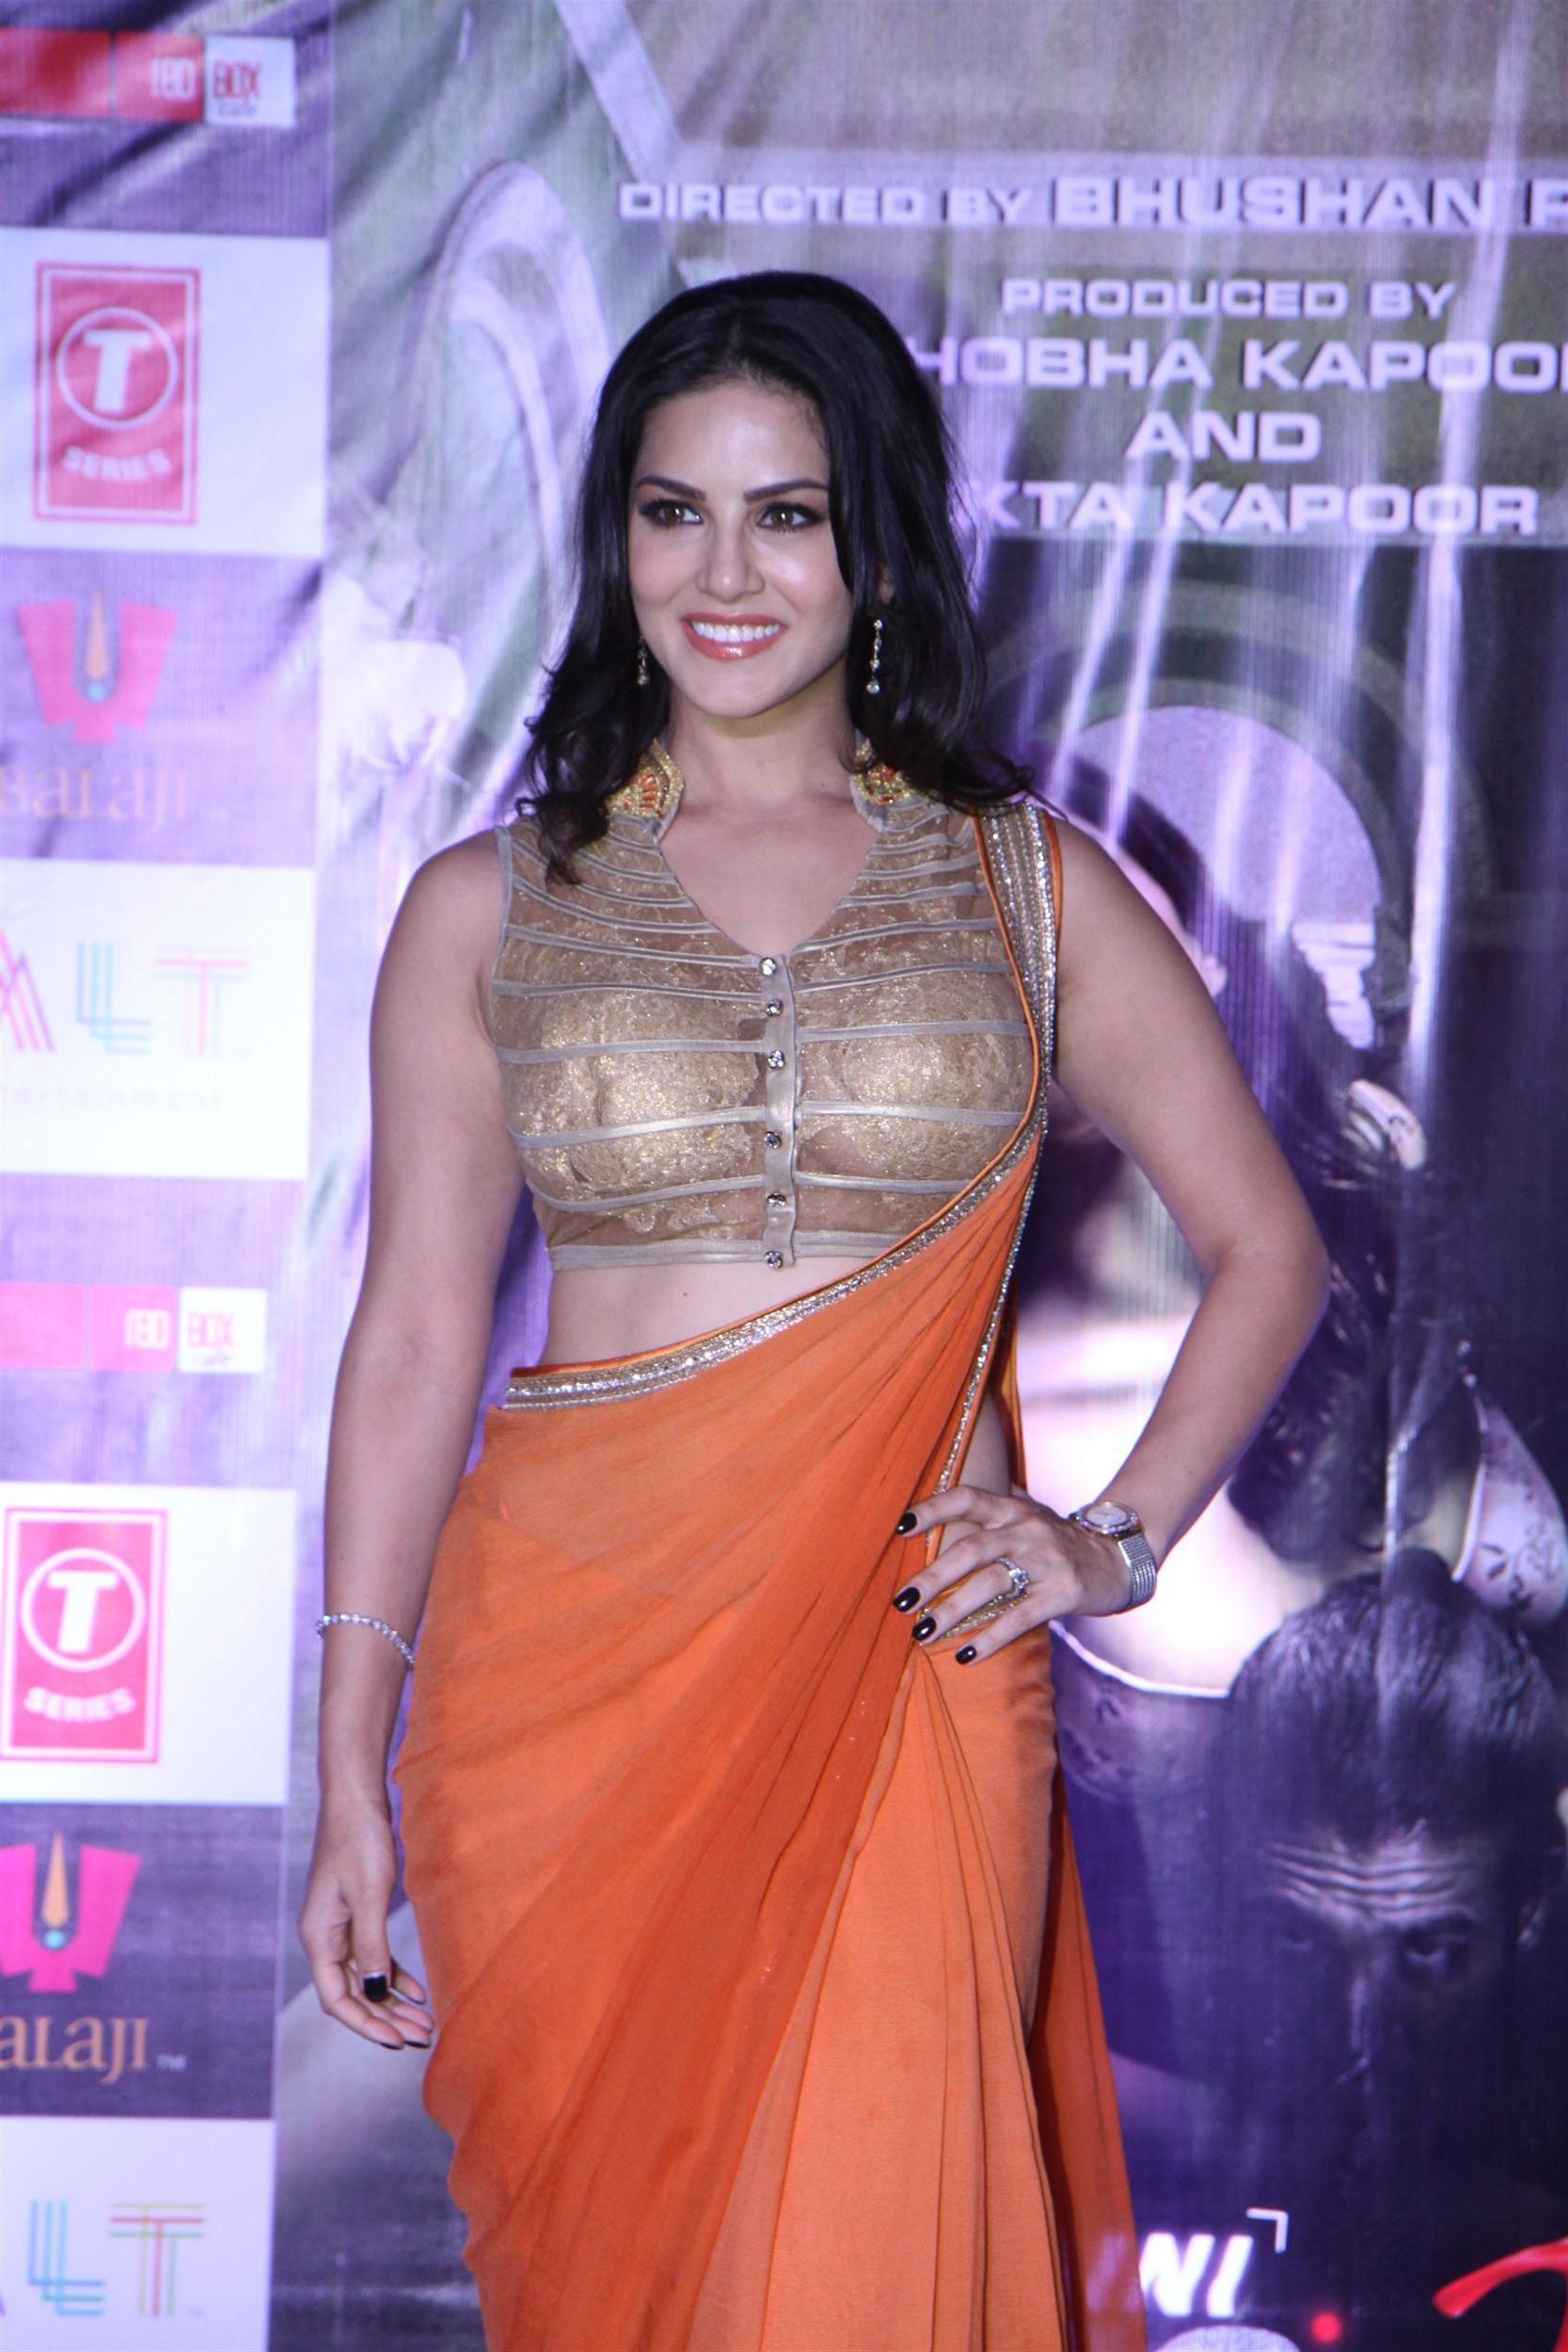 Sunny-Leone in orange sari